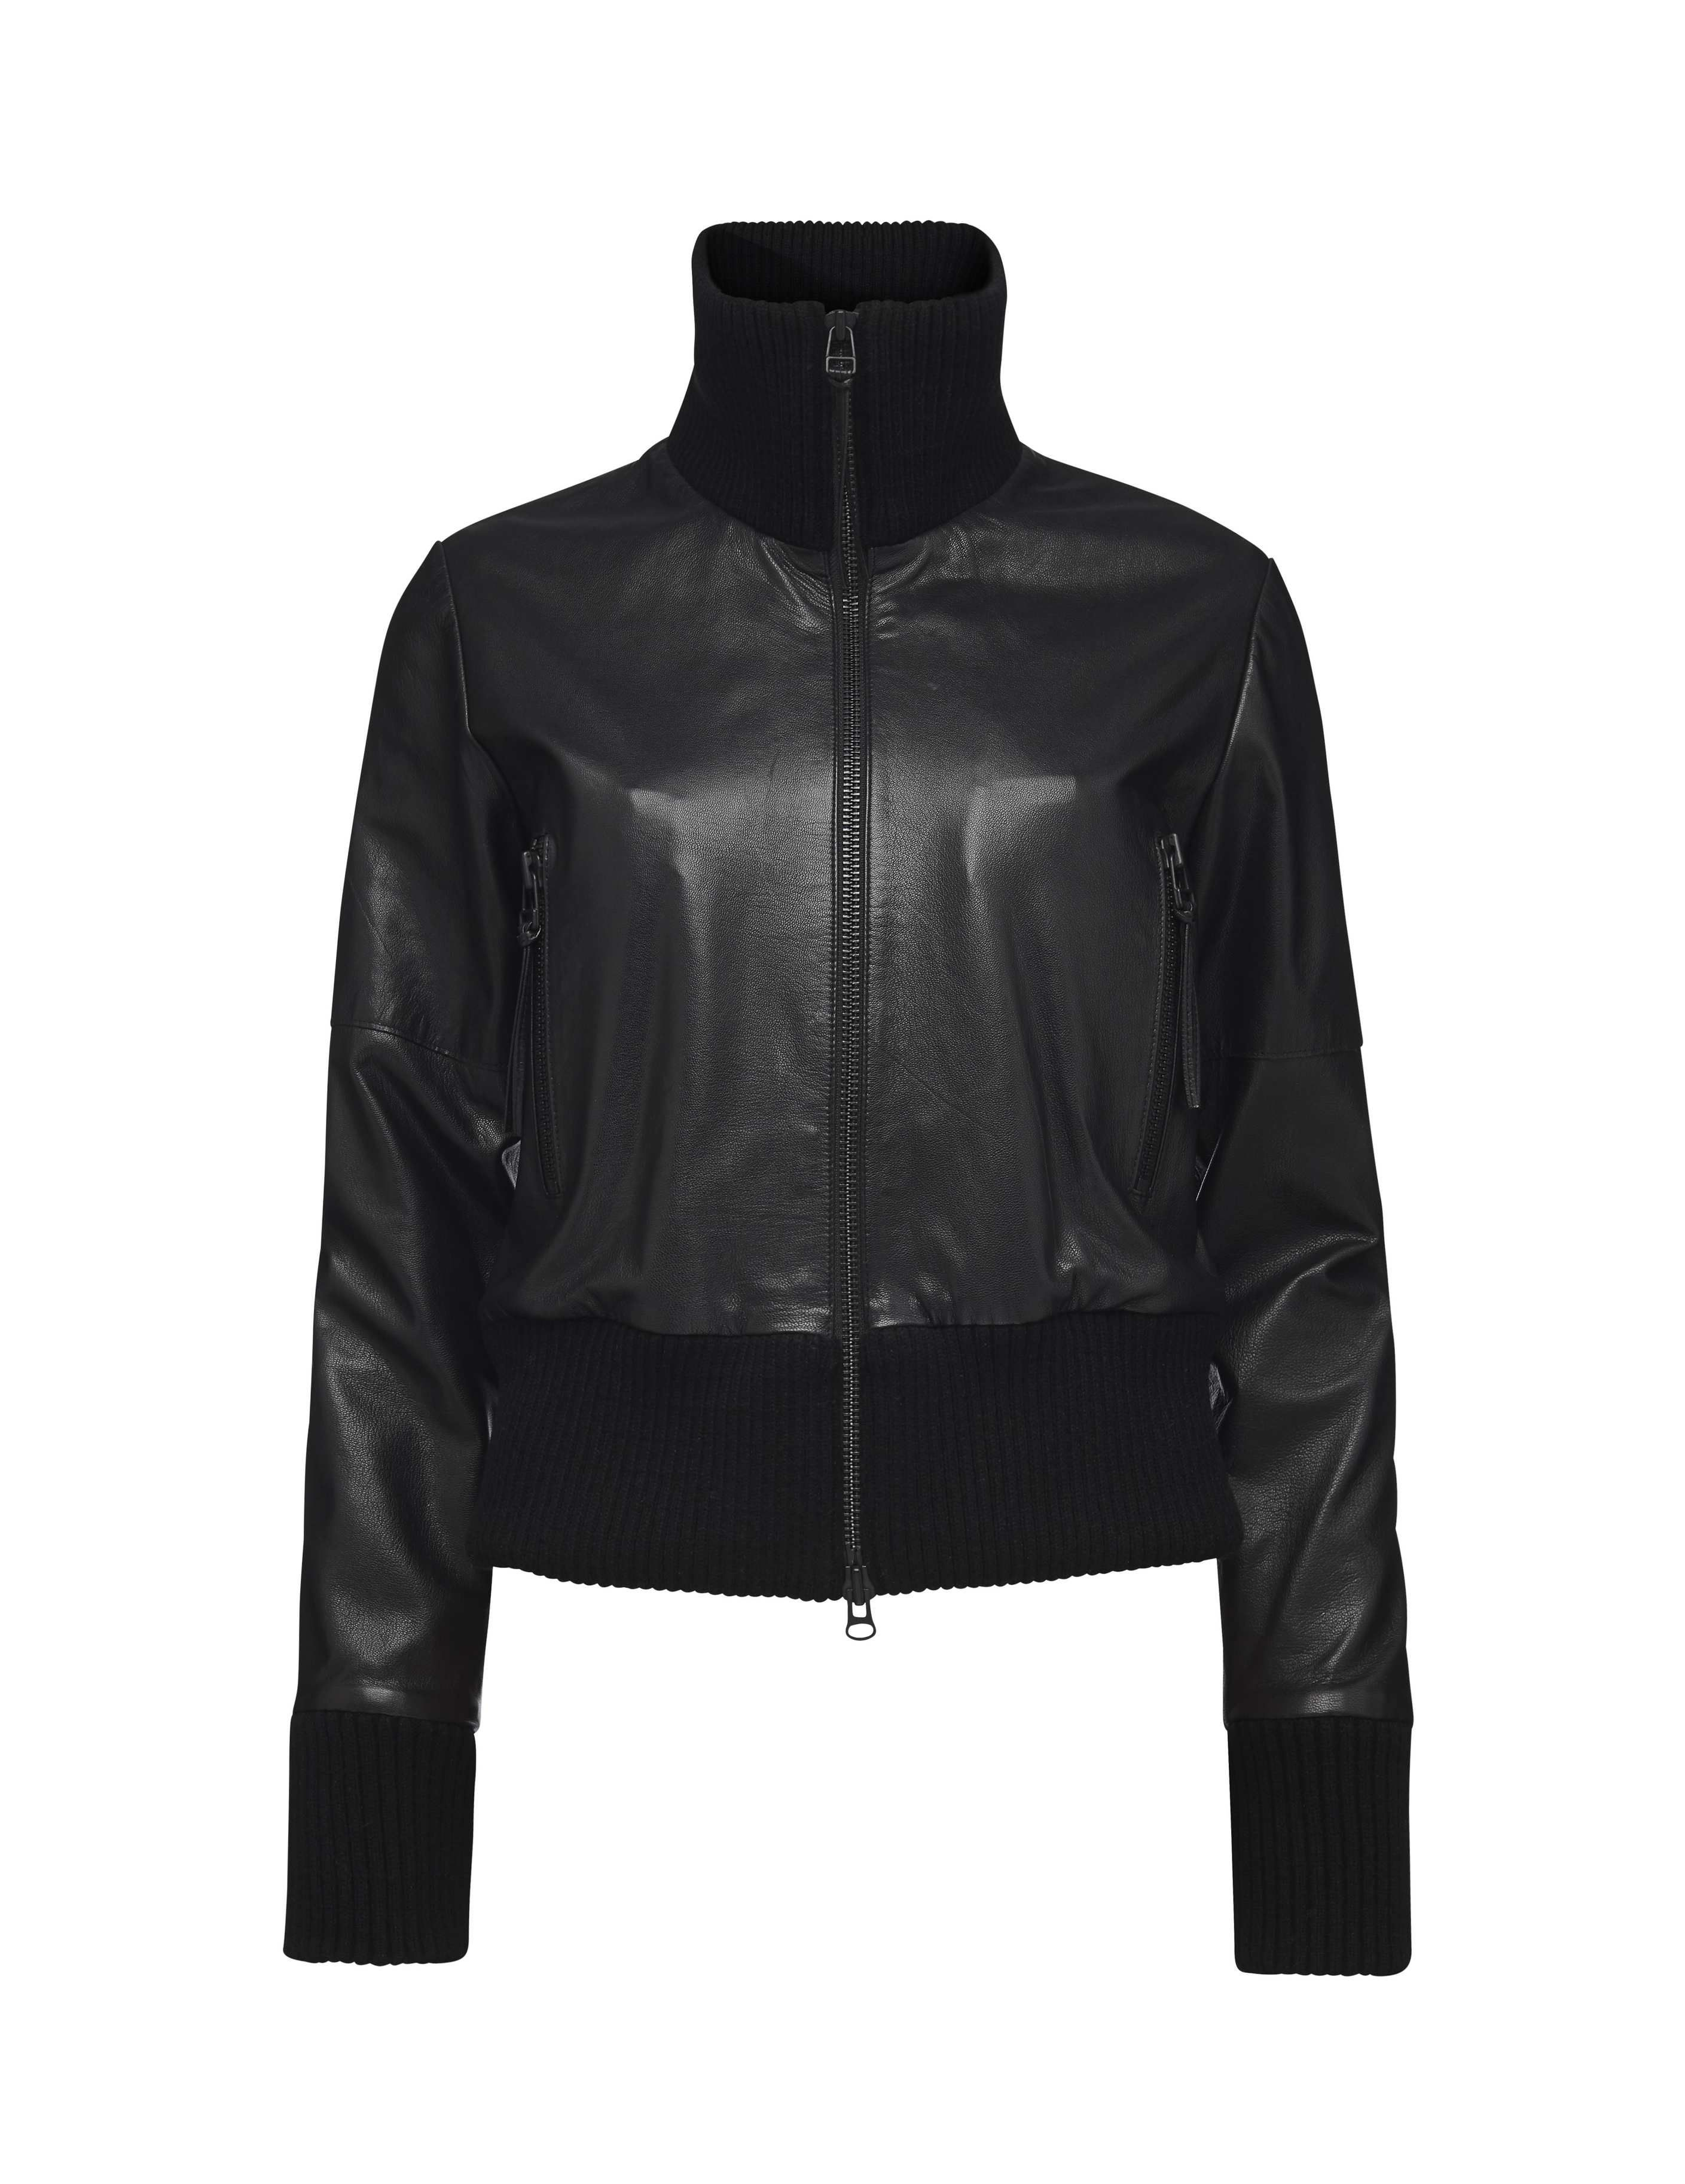 Women S Jacket In Leather Features Front Zip Fastening High Ribbed Collar In Knitted Cotton And Ribbed Trim At Cu Jackets Outerwear Details Jackets For Women [ 3652 x 2818 Pixel ]